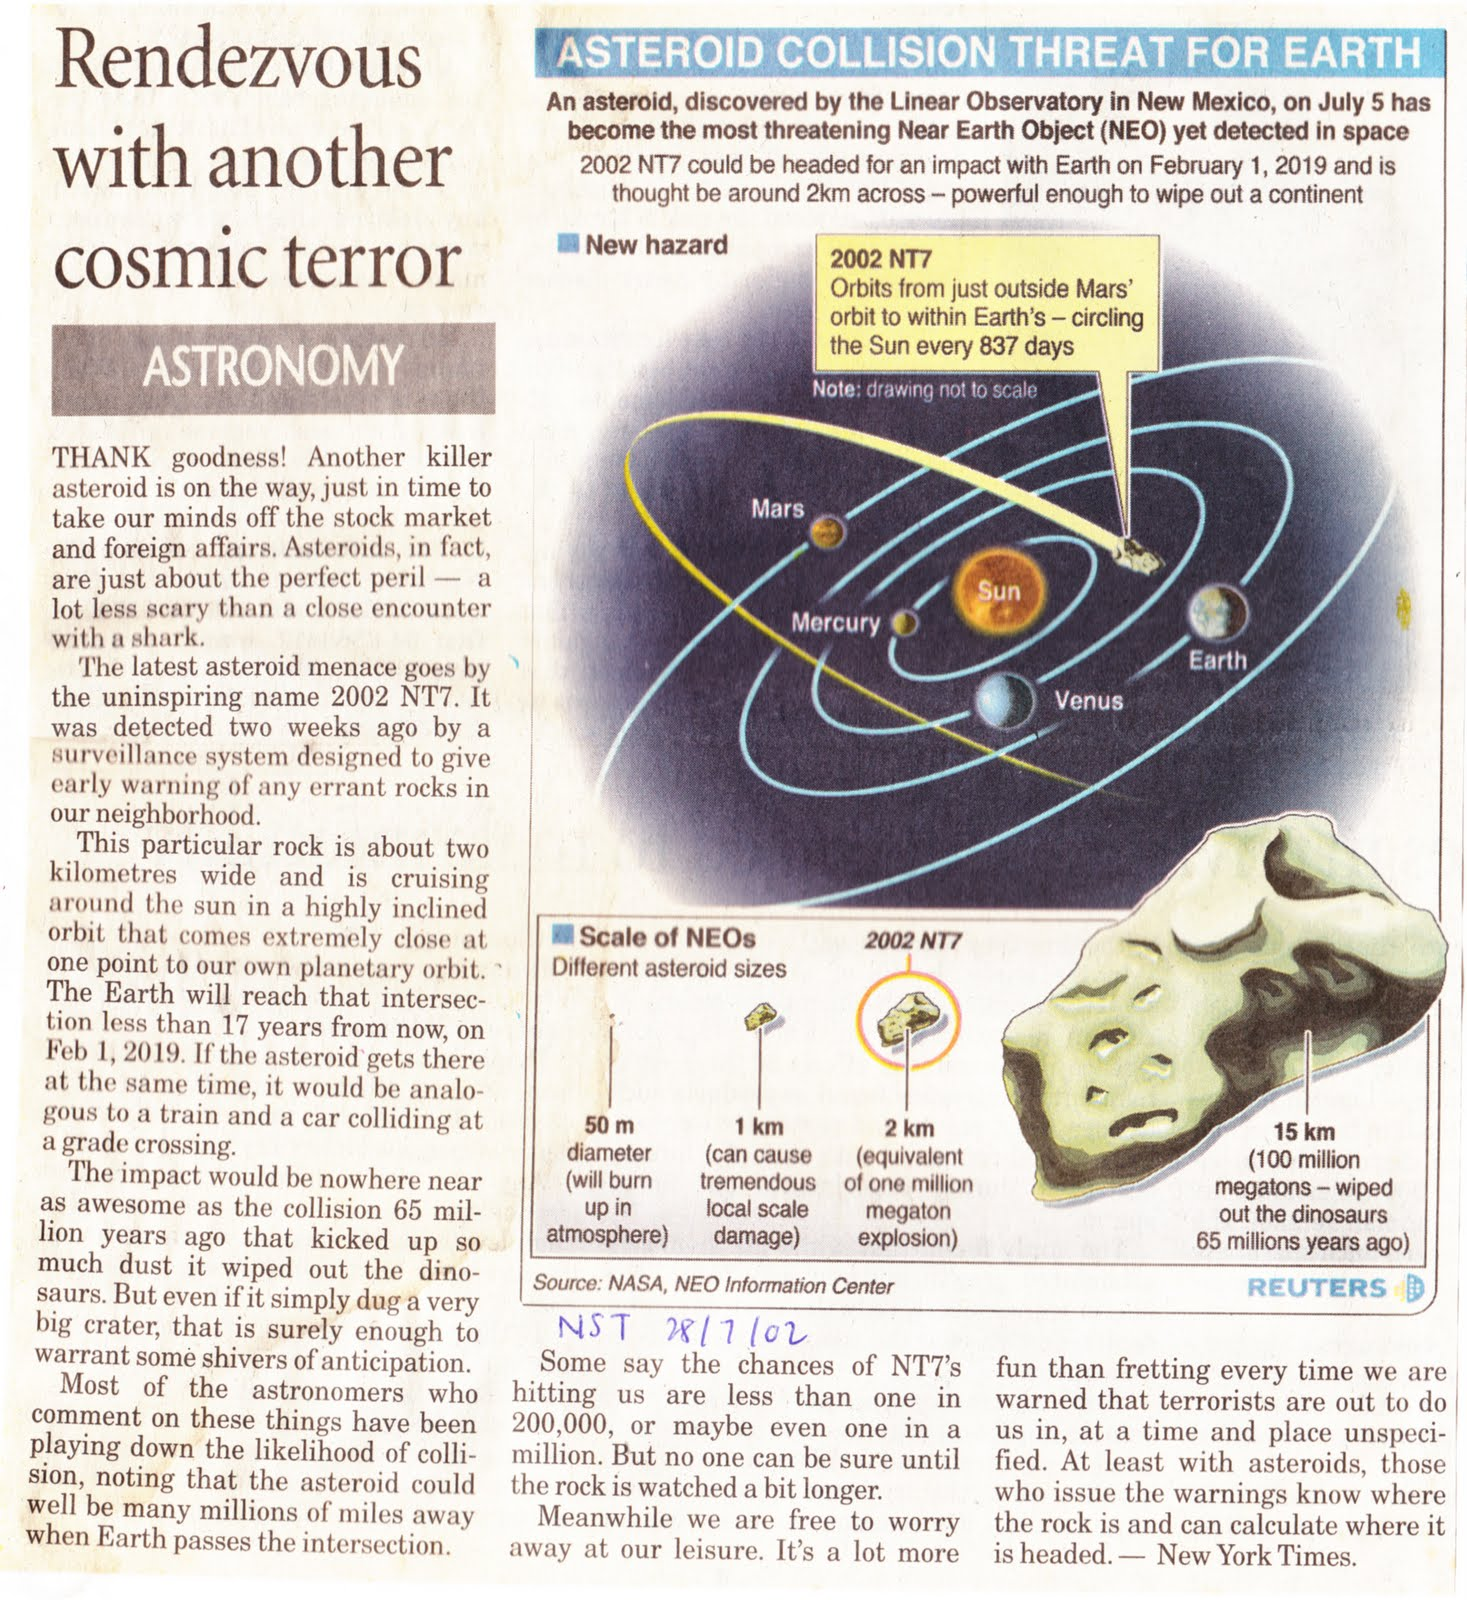 Graphic News: Planets & Asteriods | Space Science English